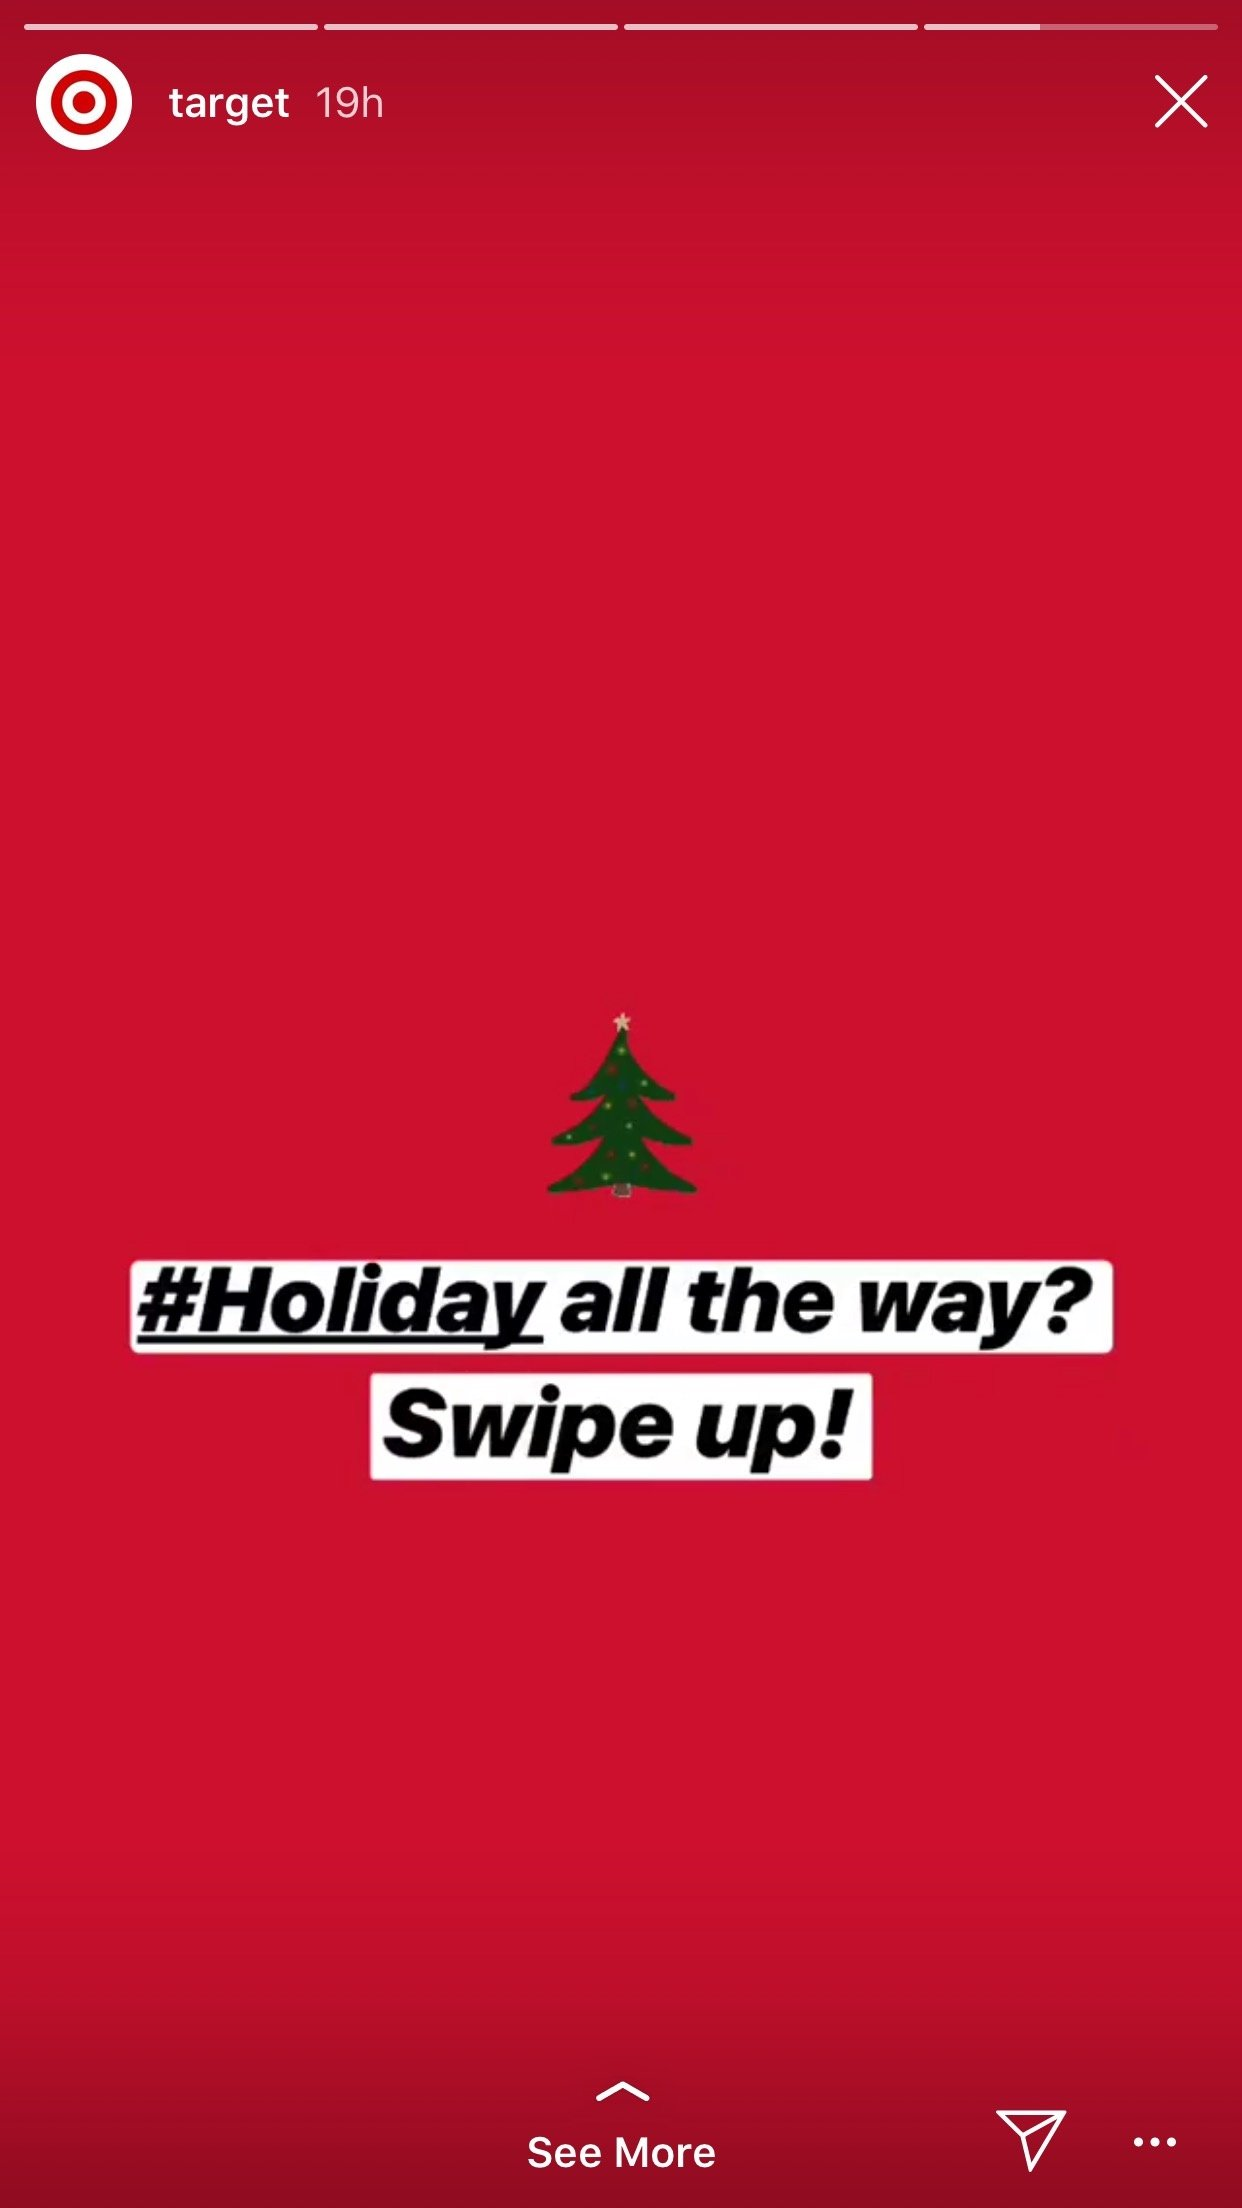 Christmas Instagram story from Target